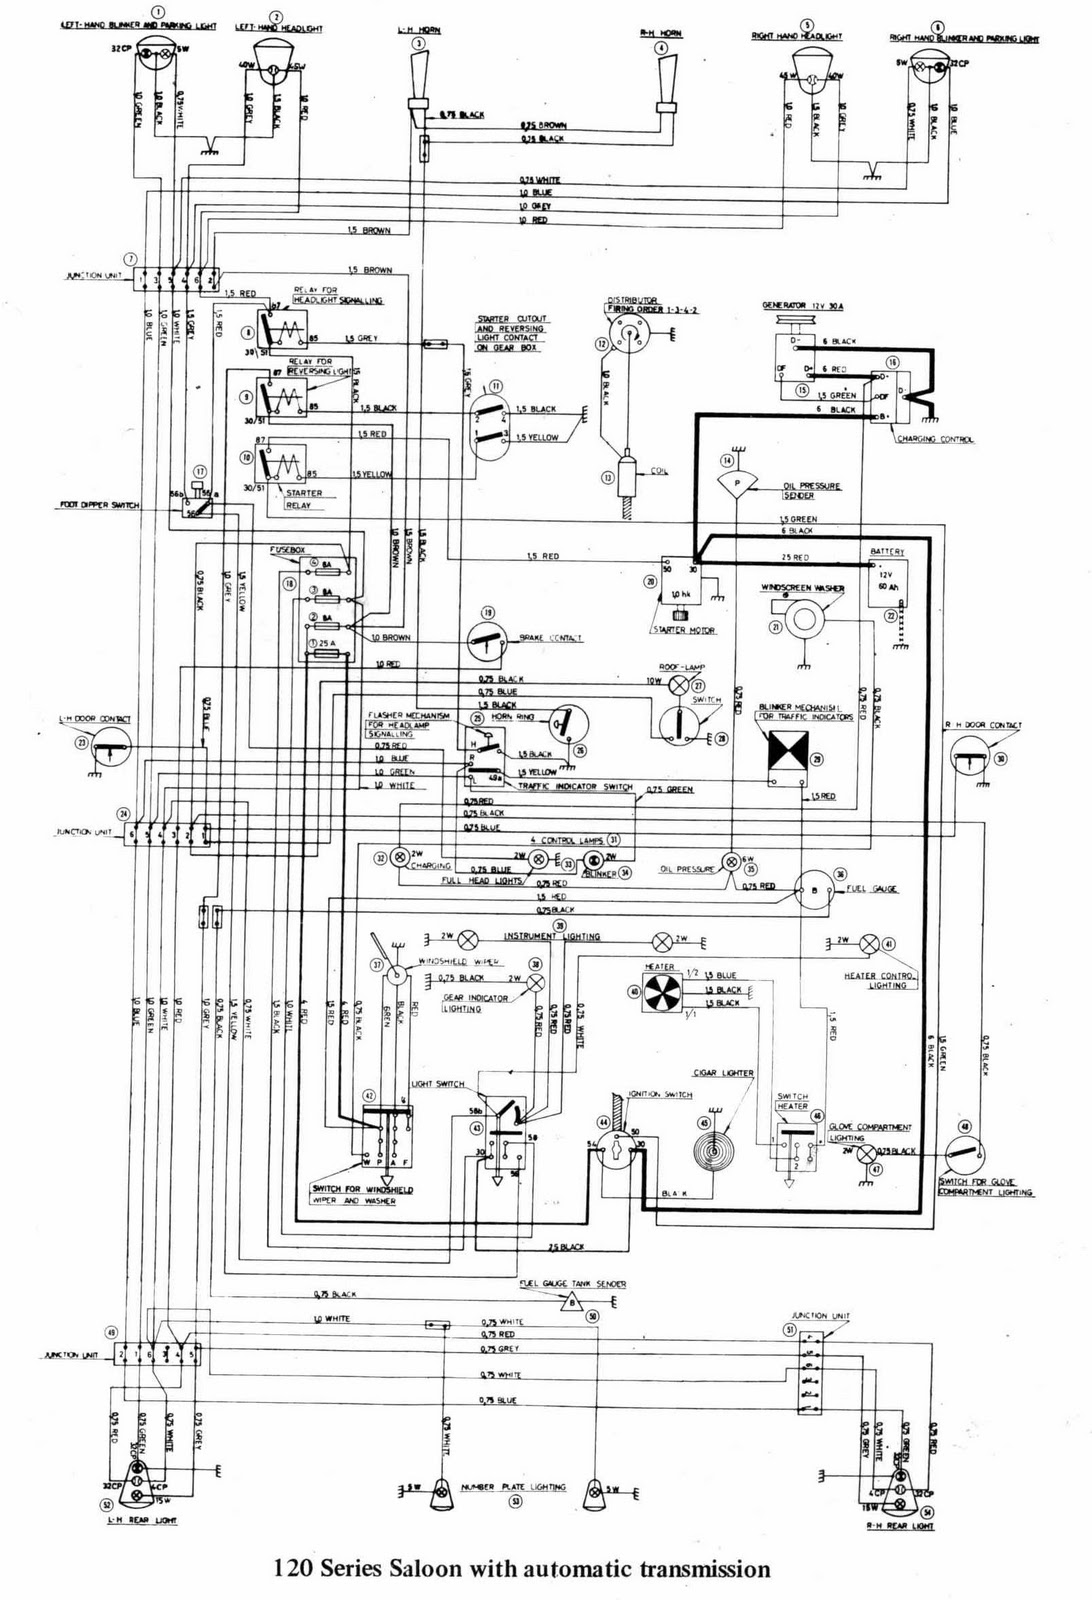 small resolution of wiring diagram volvo 850 glt 1993 wiring diagrams 1997 volvo 850 parts volvo 850 tail light wiring